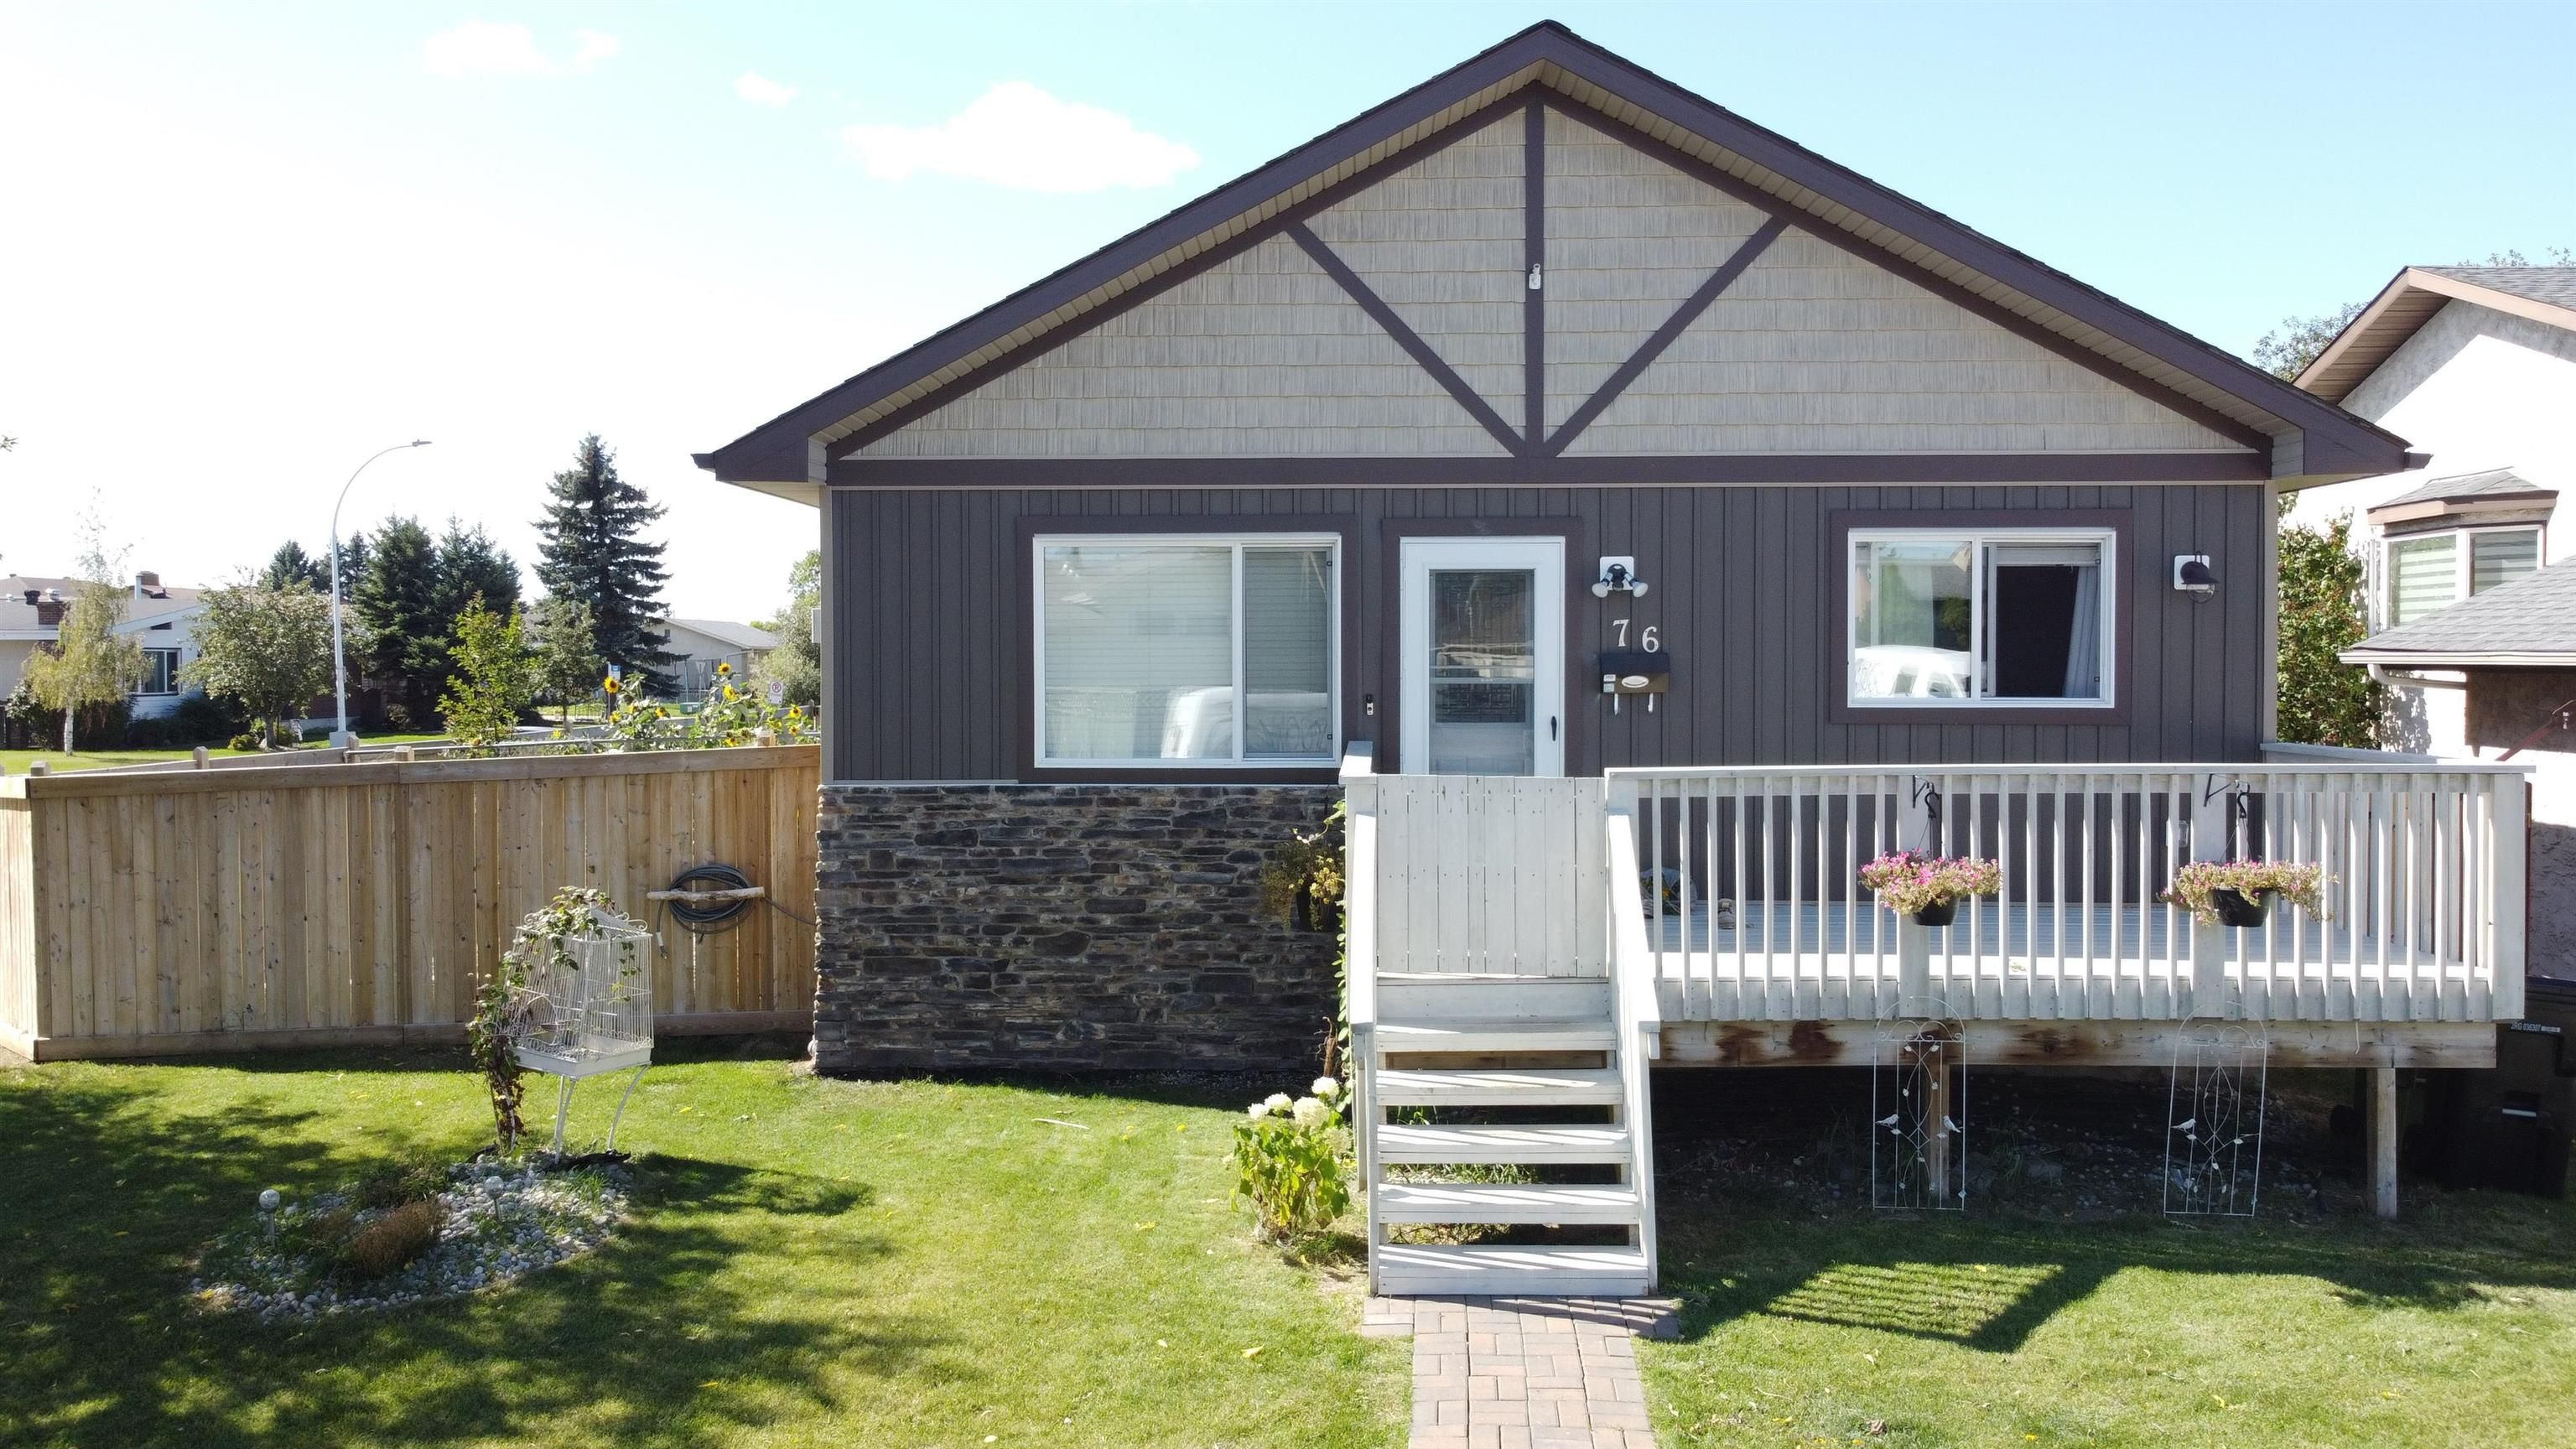 Main Photo: 76 DUNLUCE Road in Edmonton: Zone 27 House for sale : MLS®# E4261665